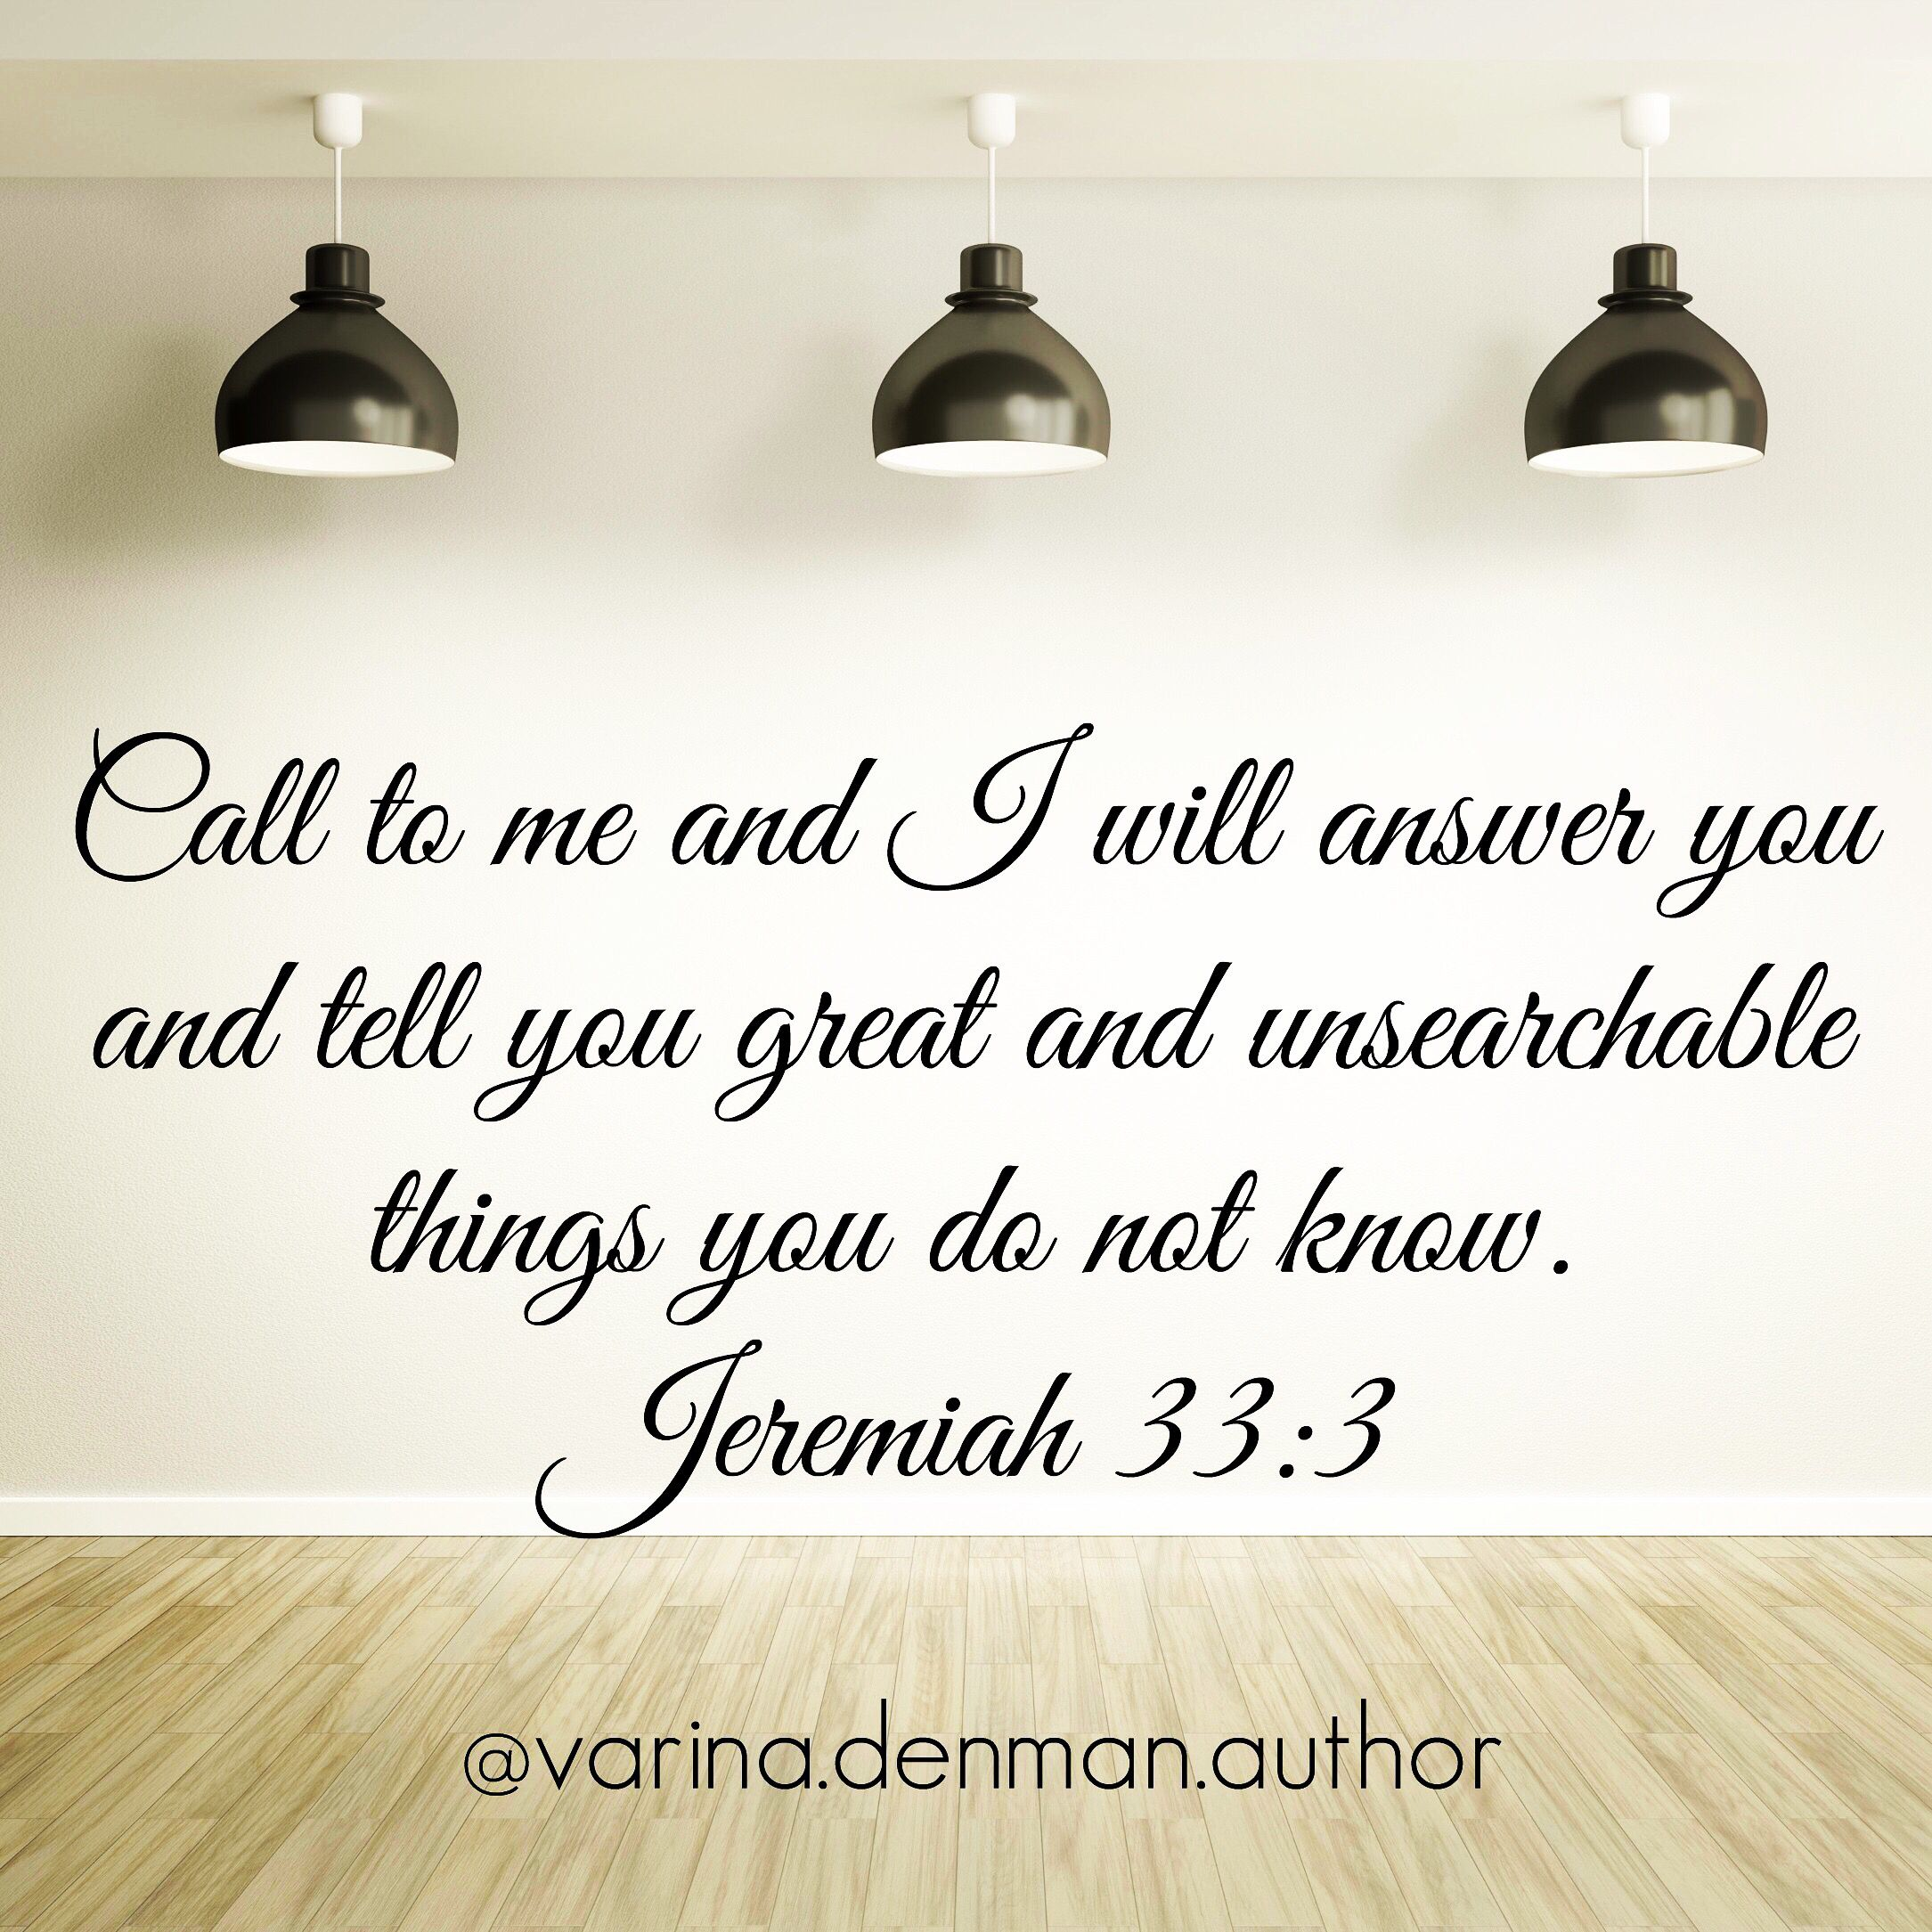 Call to me and I will answer you and tell you great and